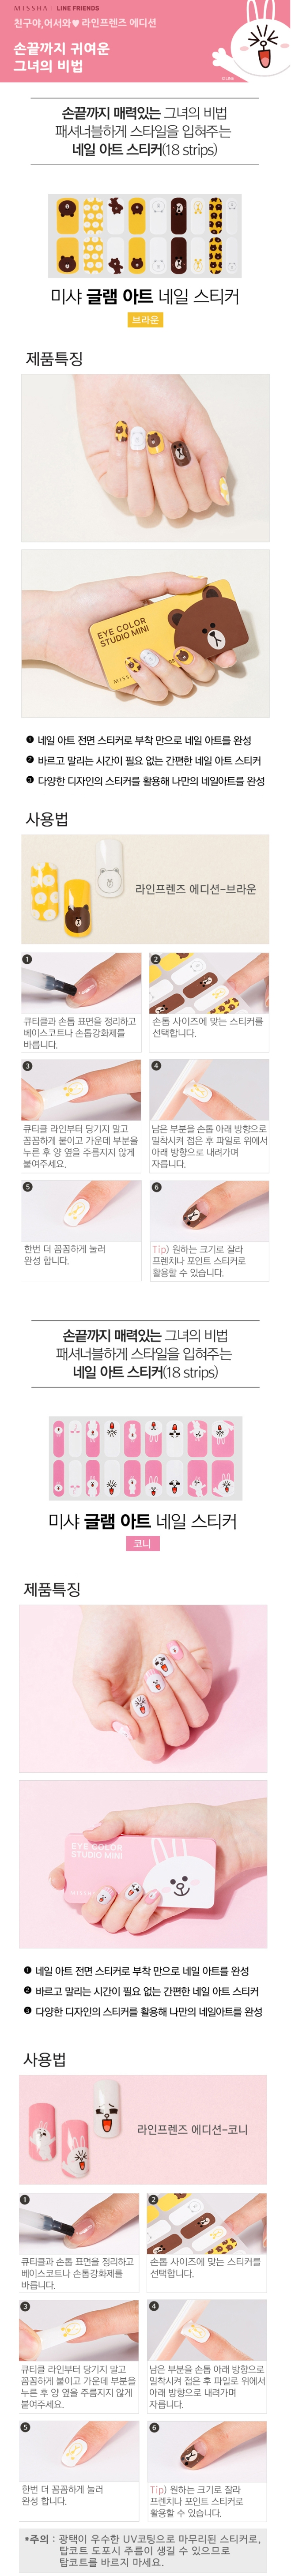 Missha x Line Friends - Glam Art Nail Stickers